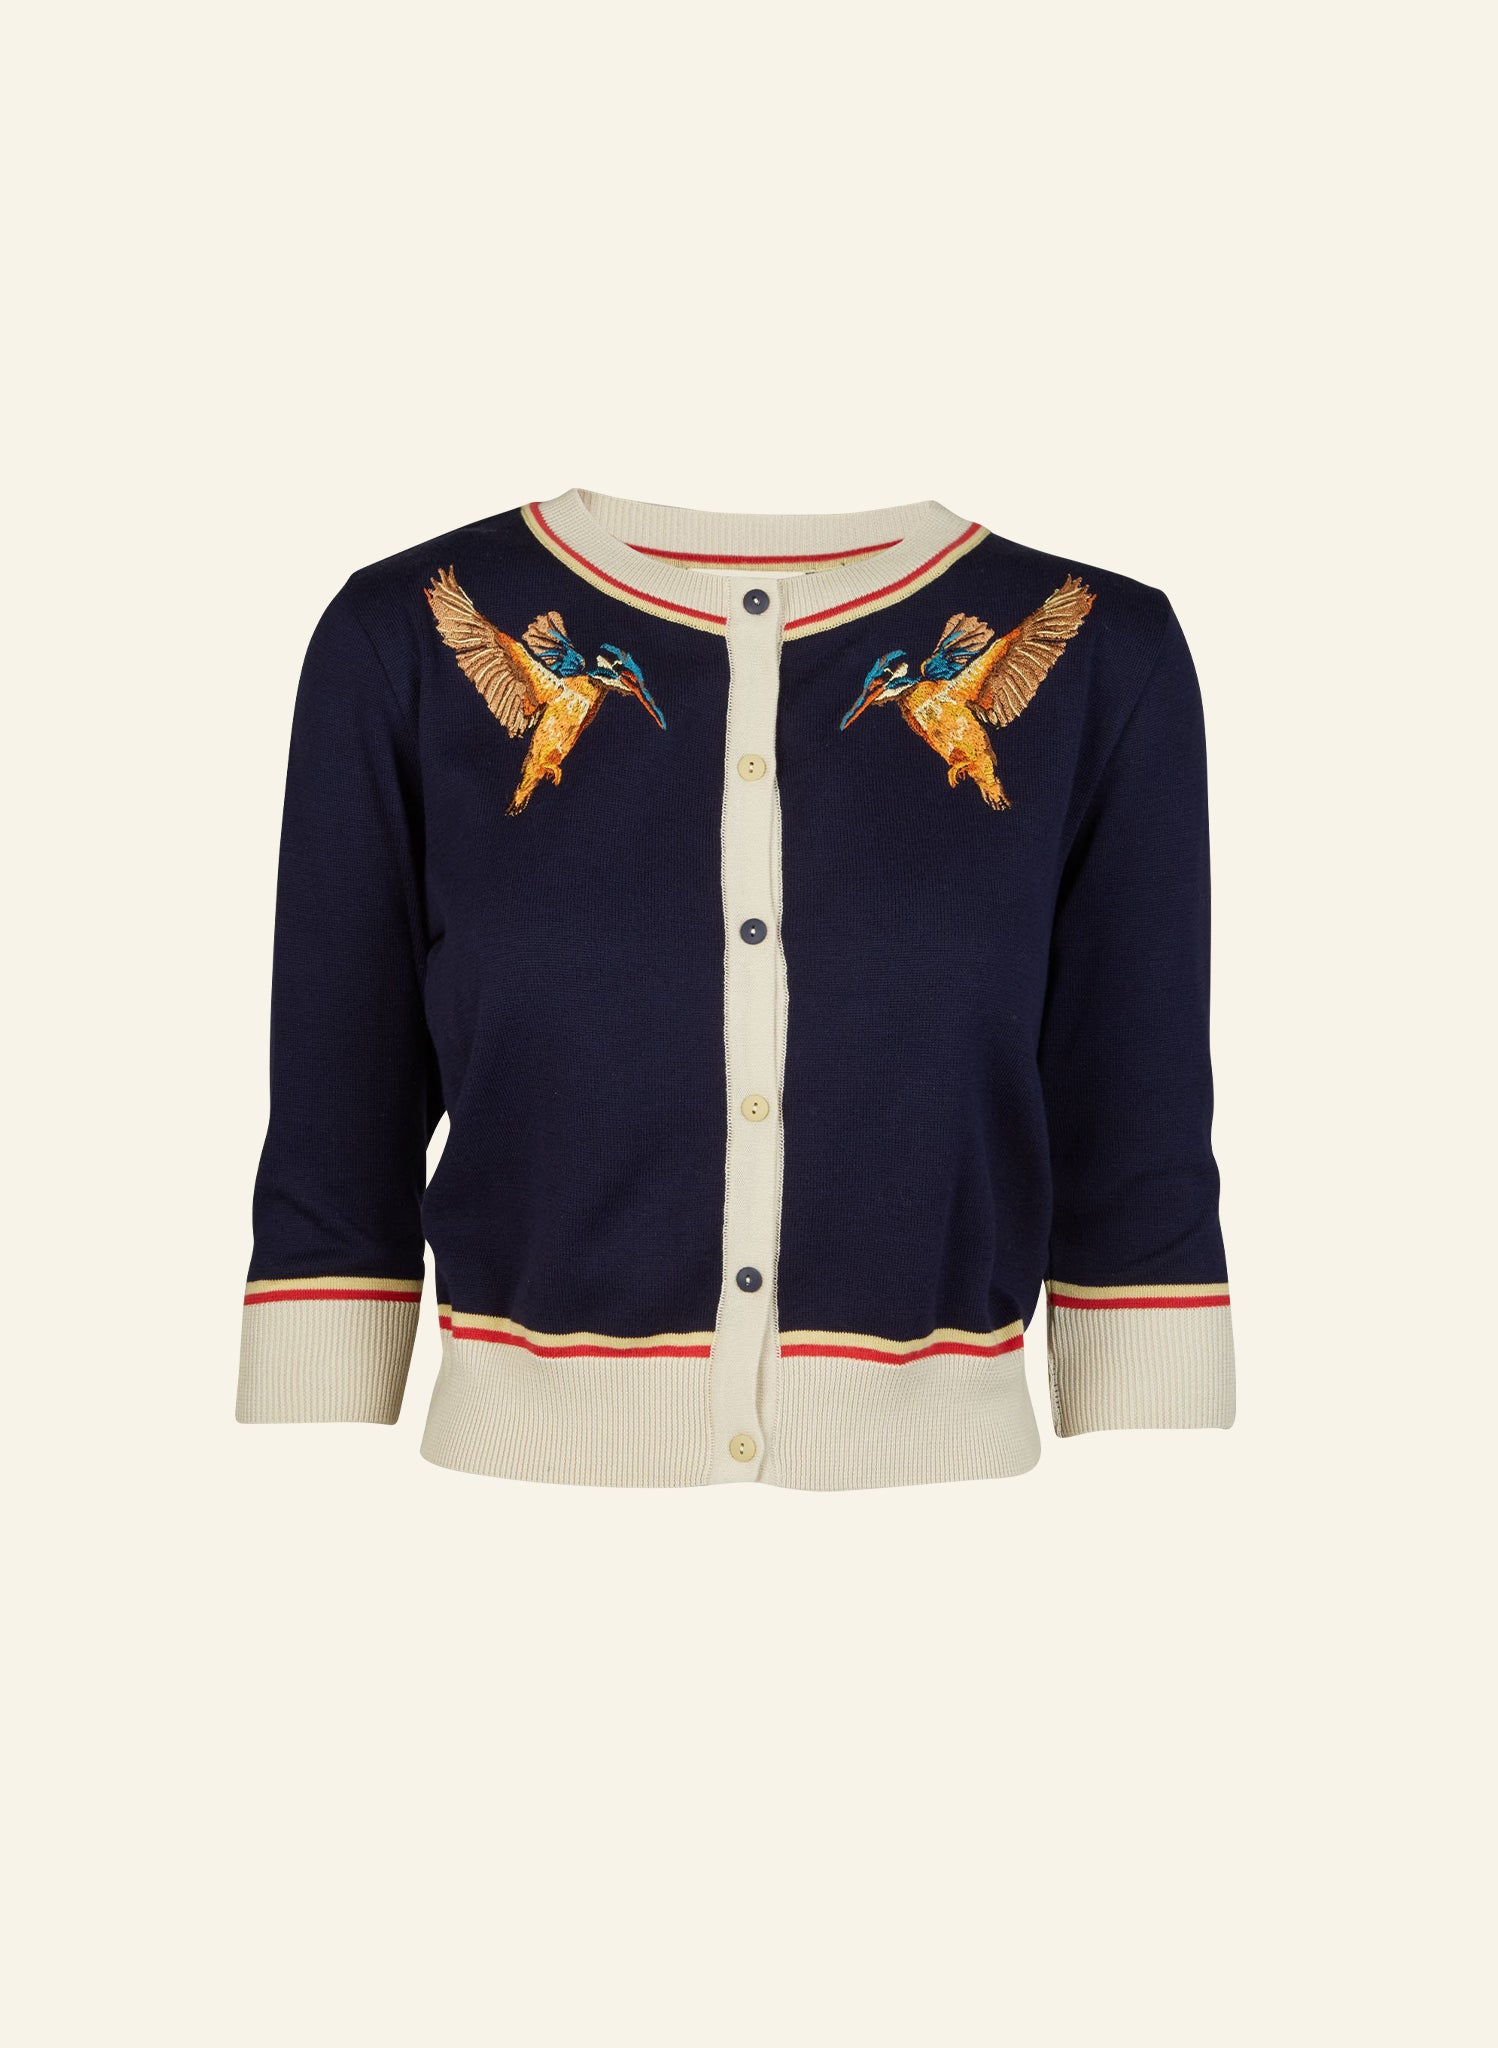 Vera - Navy Kingfisher - Organic Cotton Cardigan